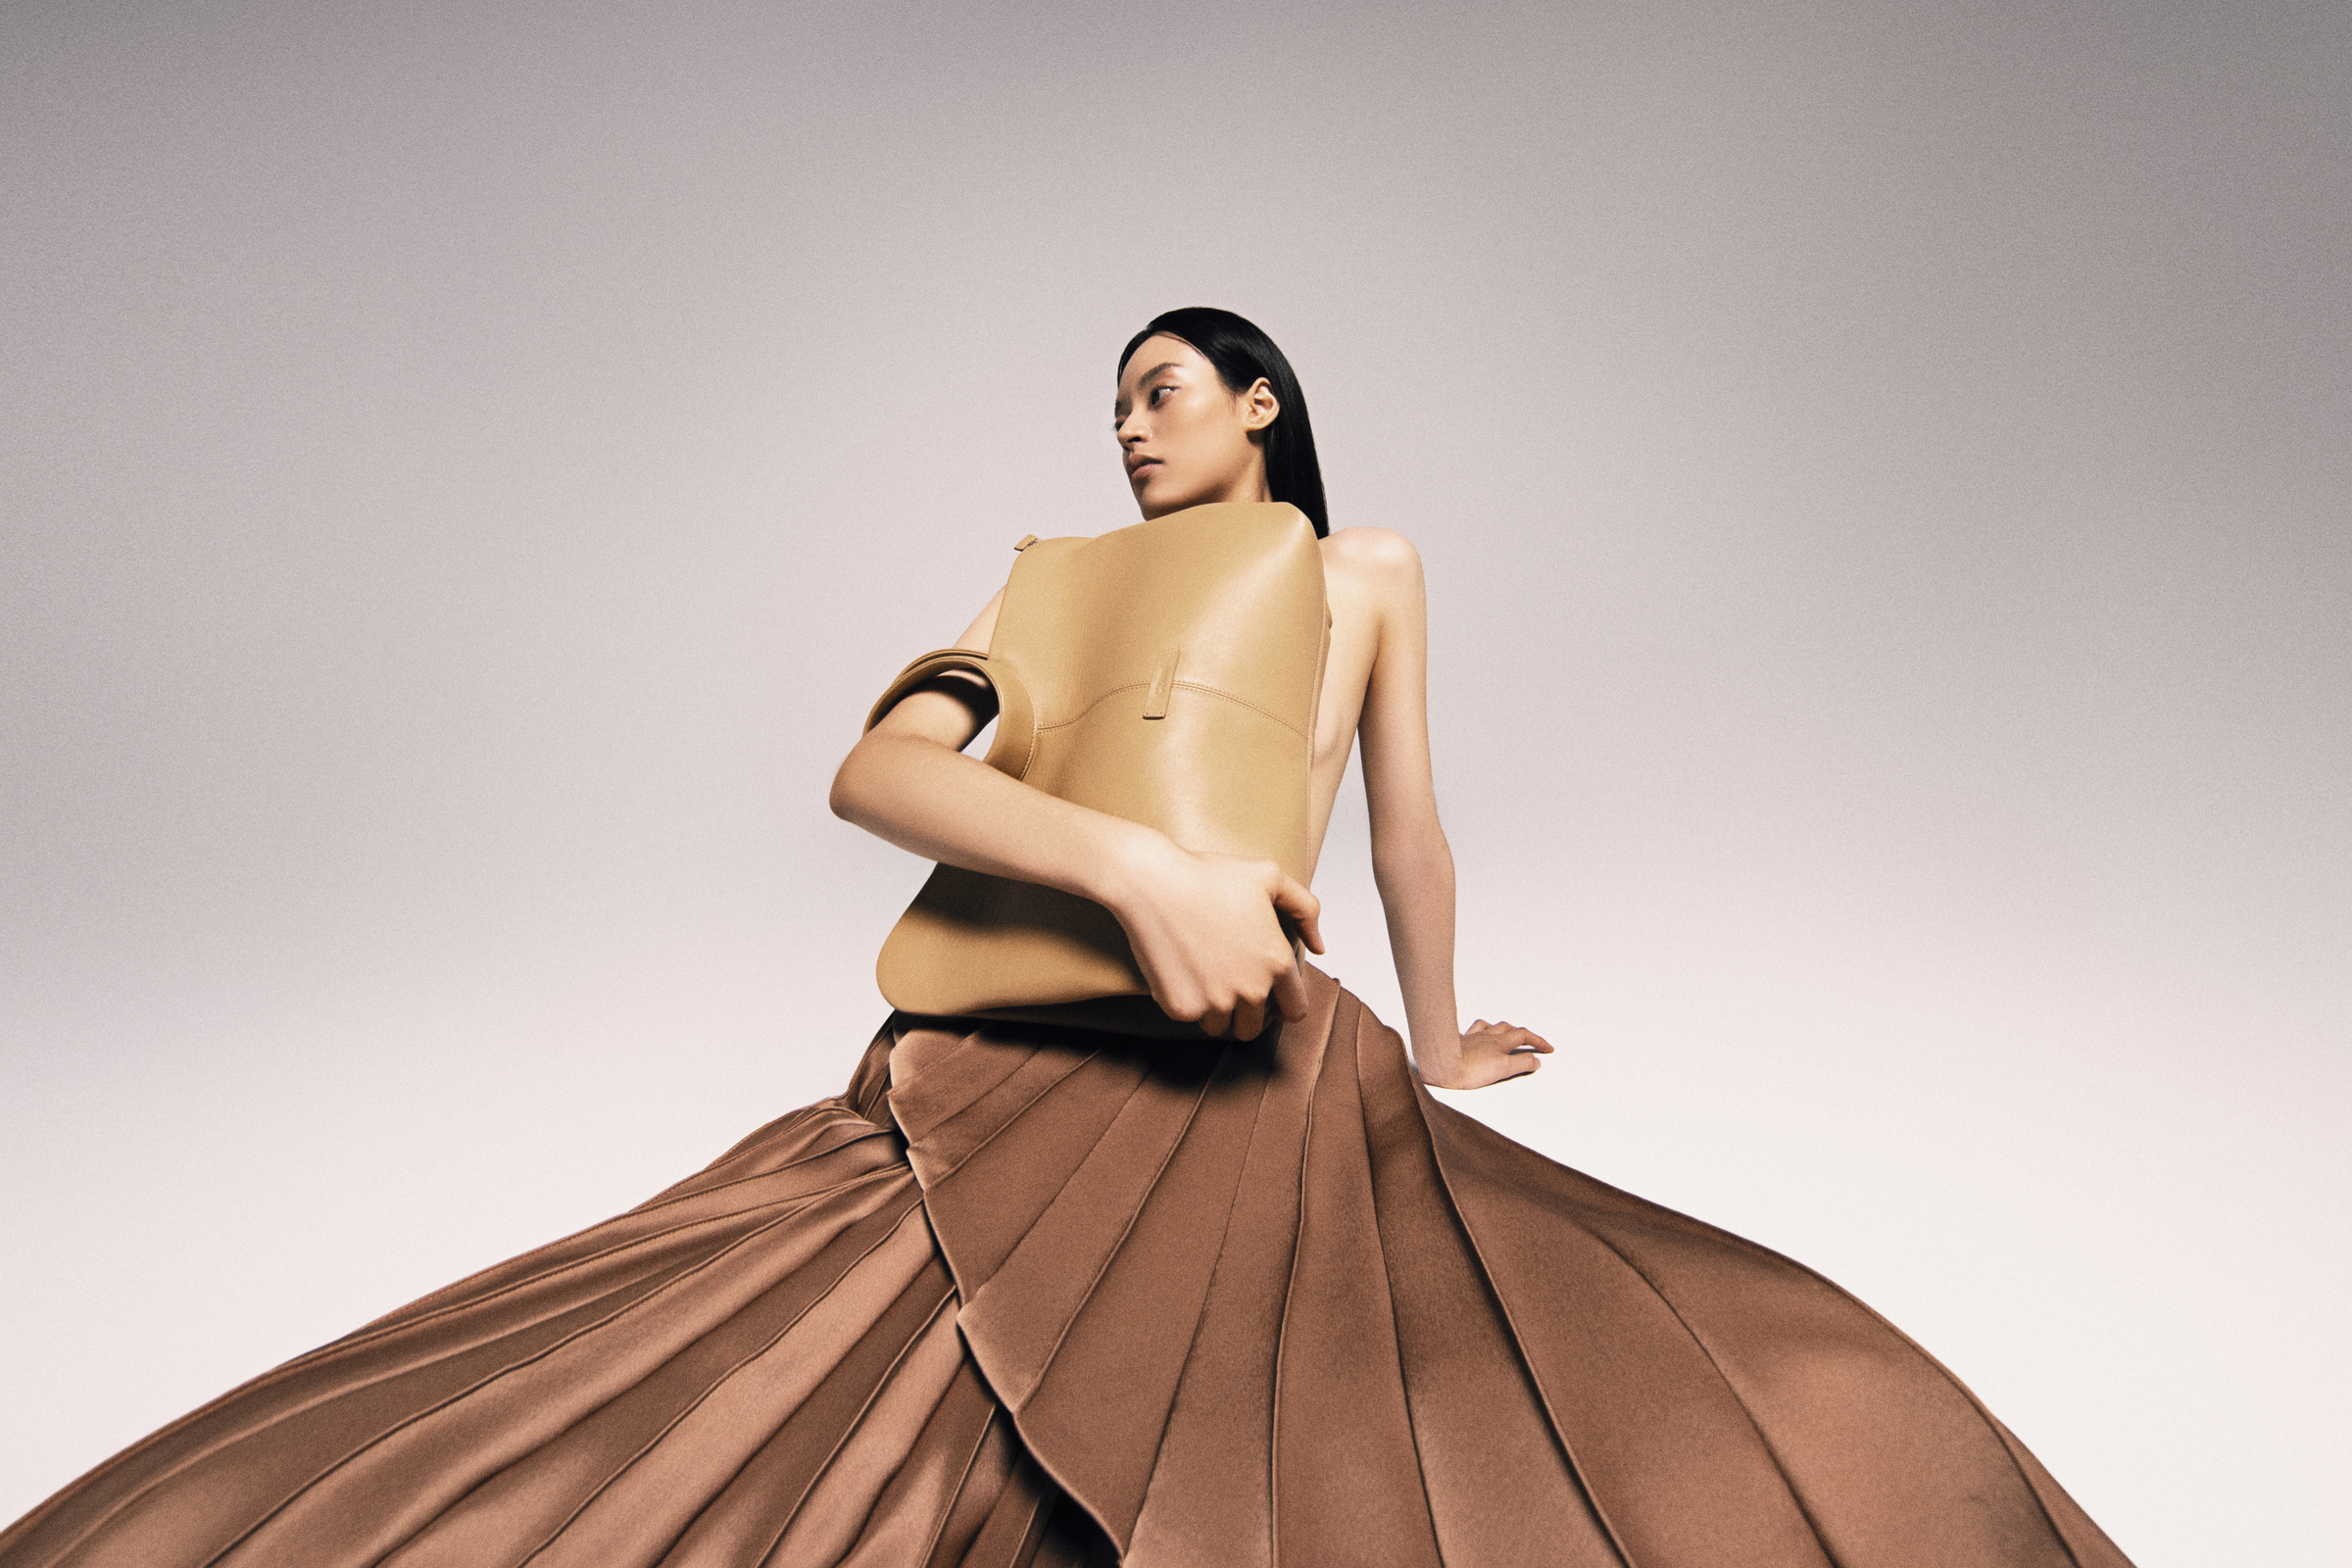 The designer hopes that, through the bag collection, he can introduce Vietnamese cultural values to more international audiences. Cuong Dam was born in 1990 in Hanoi. After graduating from Hanoi University of Architecture in 2013, he later attended the London College for Design & Fashion in the capital to follow his fashion design passion. Dams style often emphases on the shaping of the design, aiming for a luxurious and elegant style that can be worn in many situations.